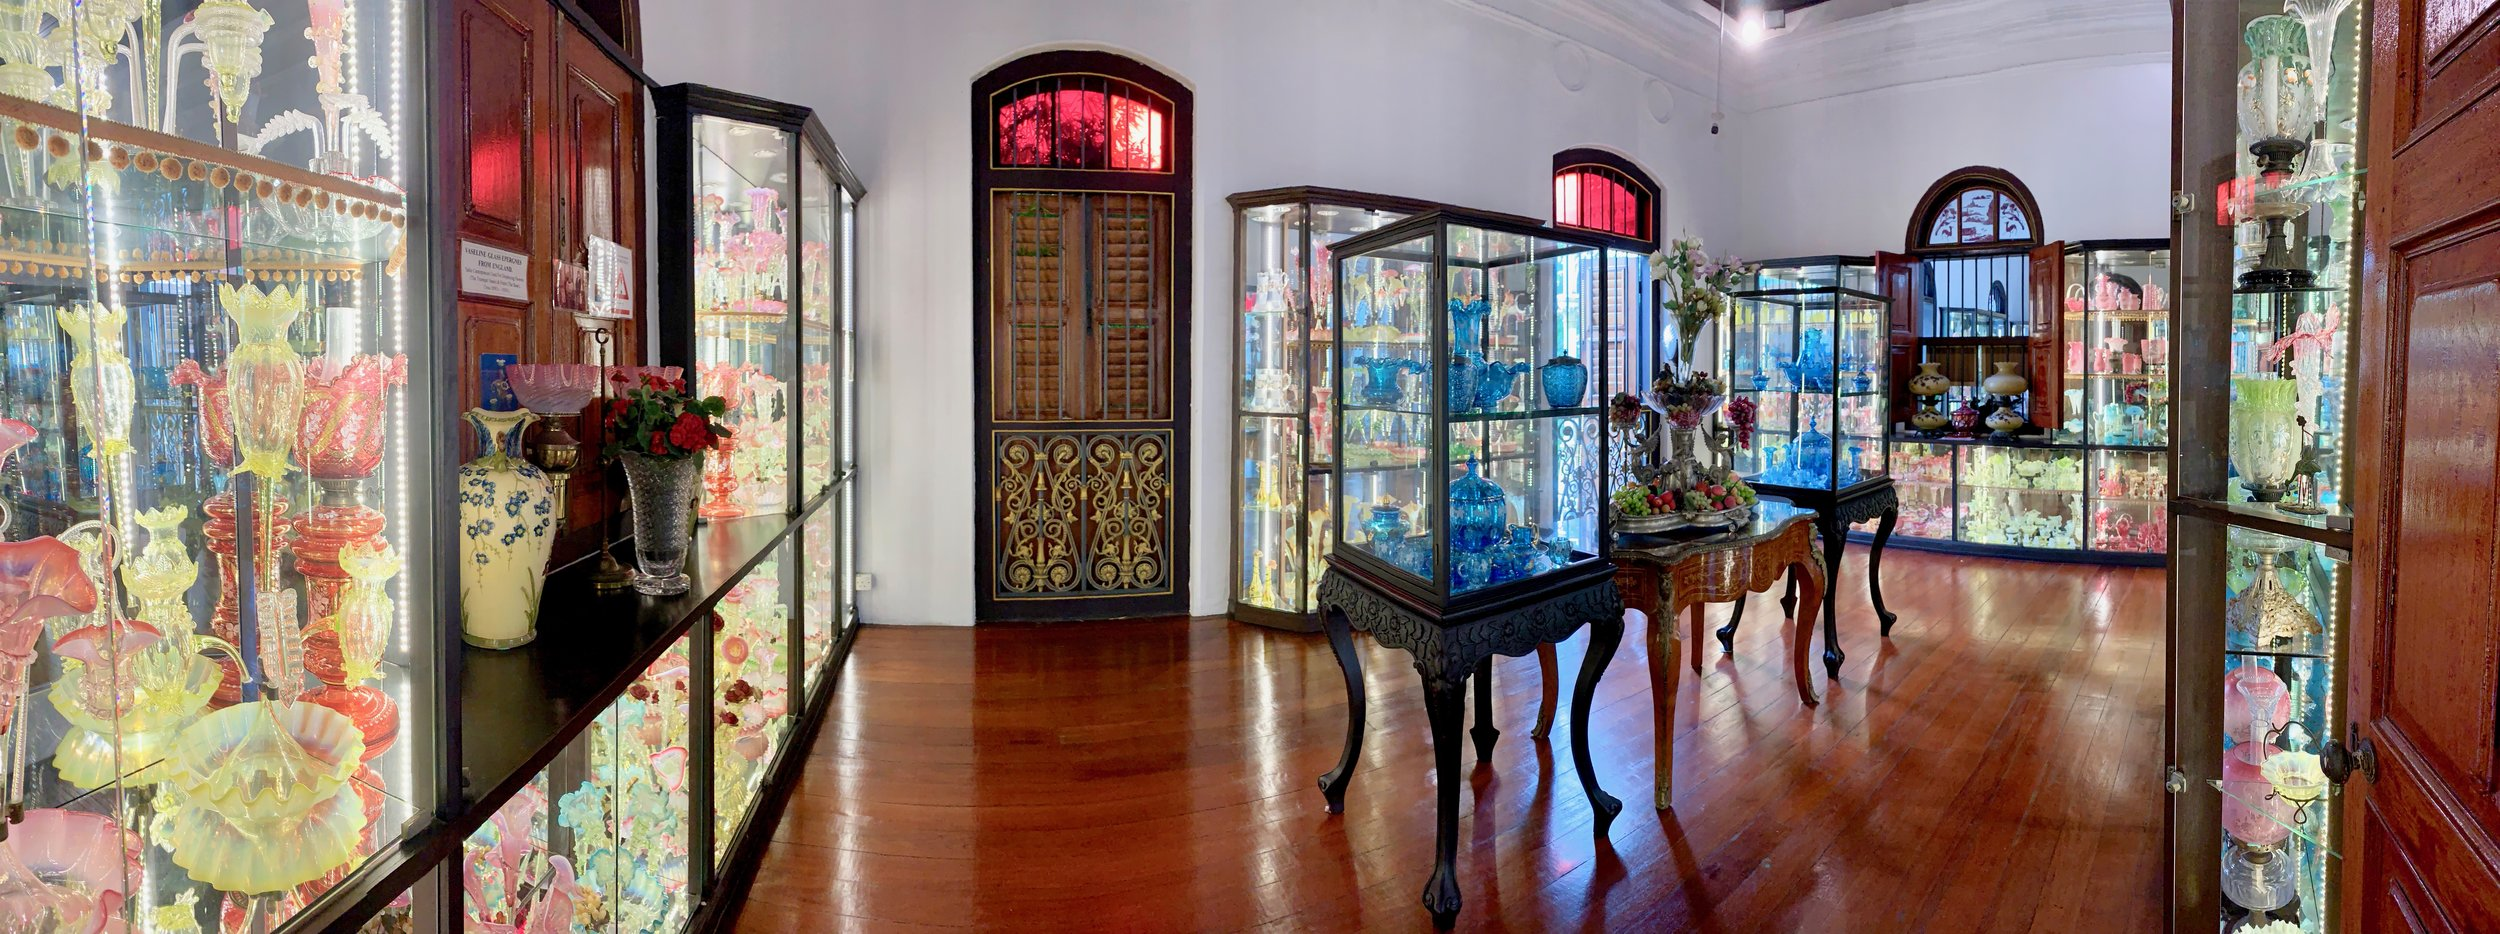 This room contains a display of the some of mansion's glass centerpieces and serving ware, the French name being epergne. All imported from Europe. French on the left and Italian, specifically Venetian Murano glassware worth in the tens of thousands of dollars, on the right.